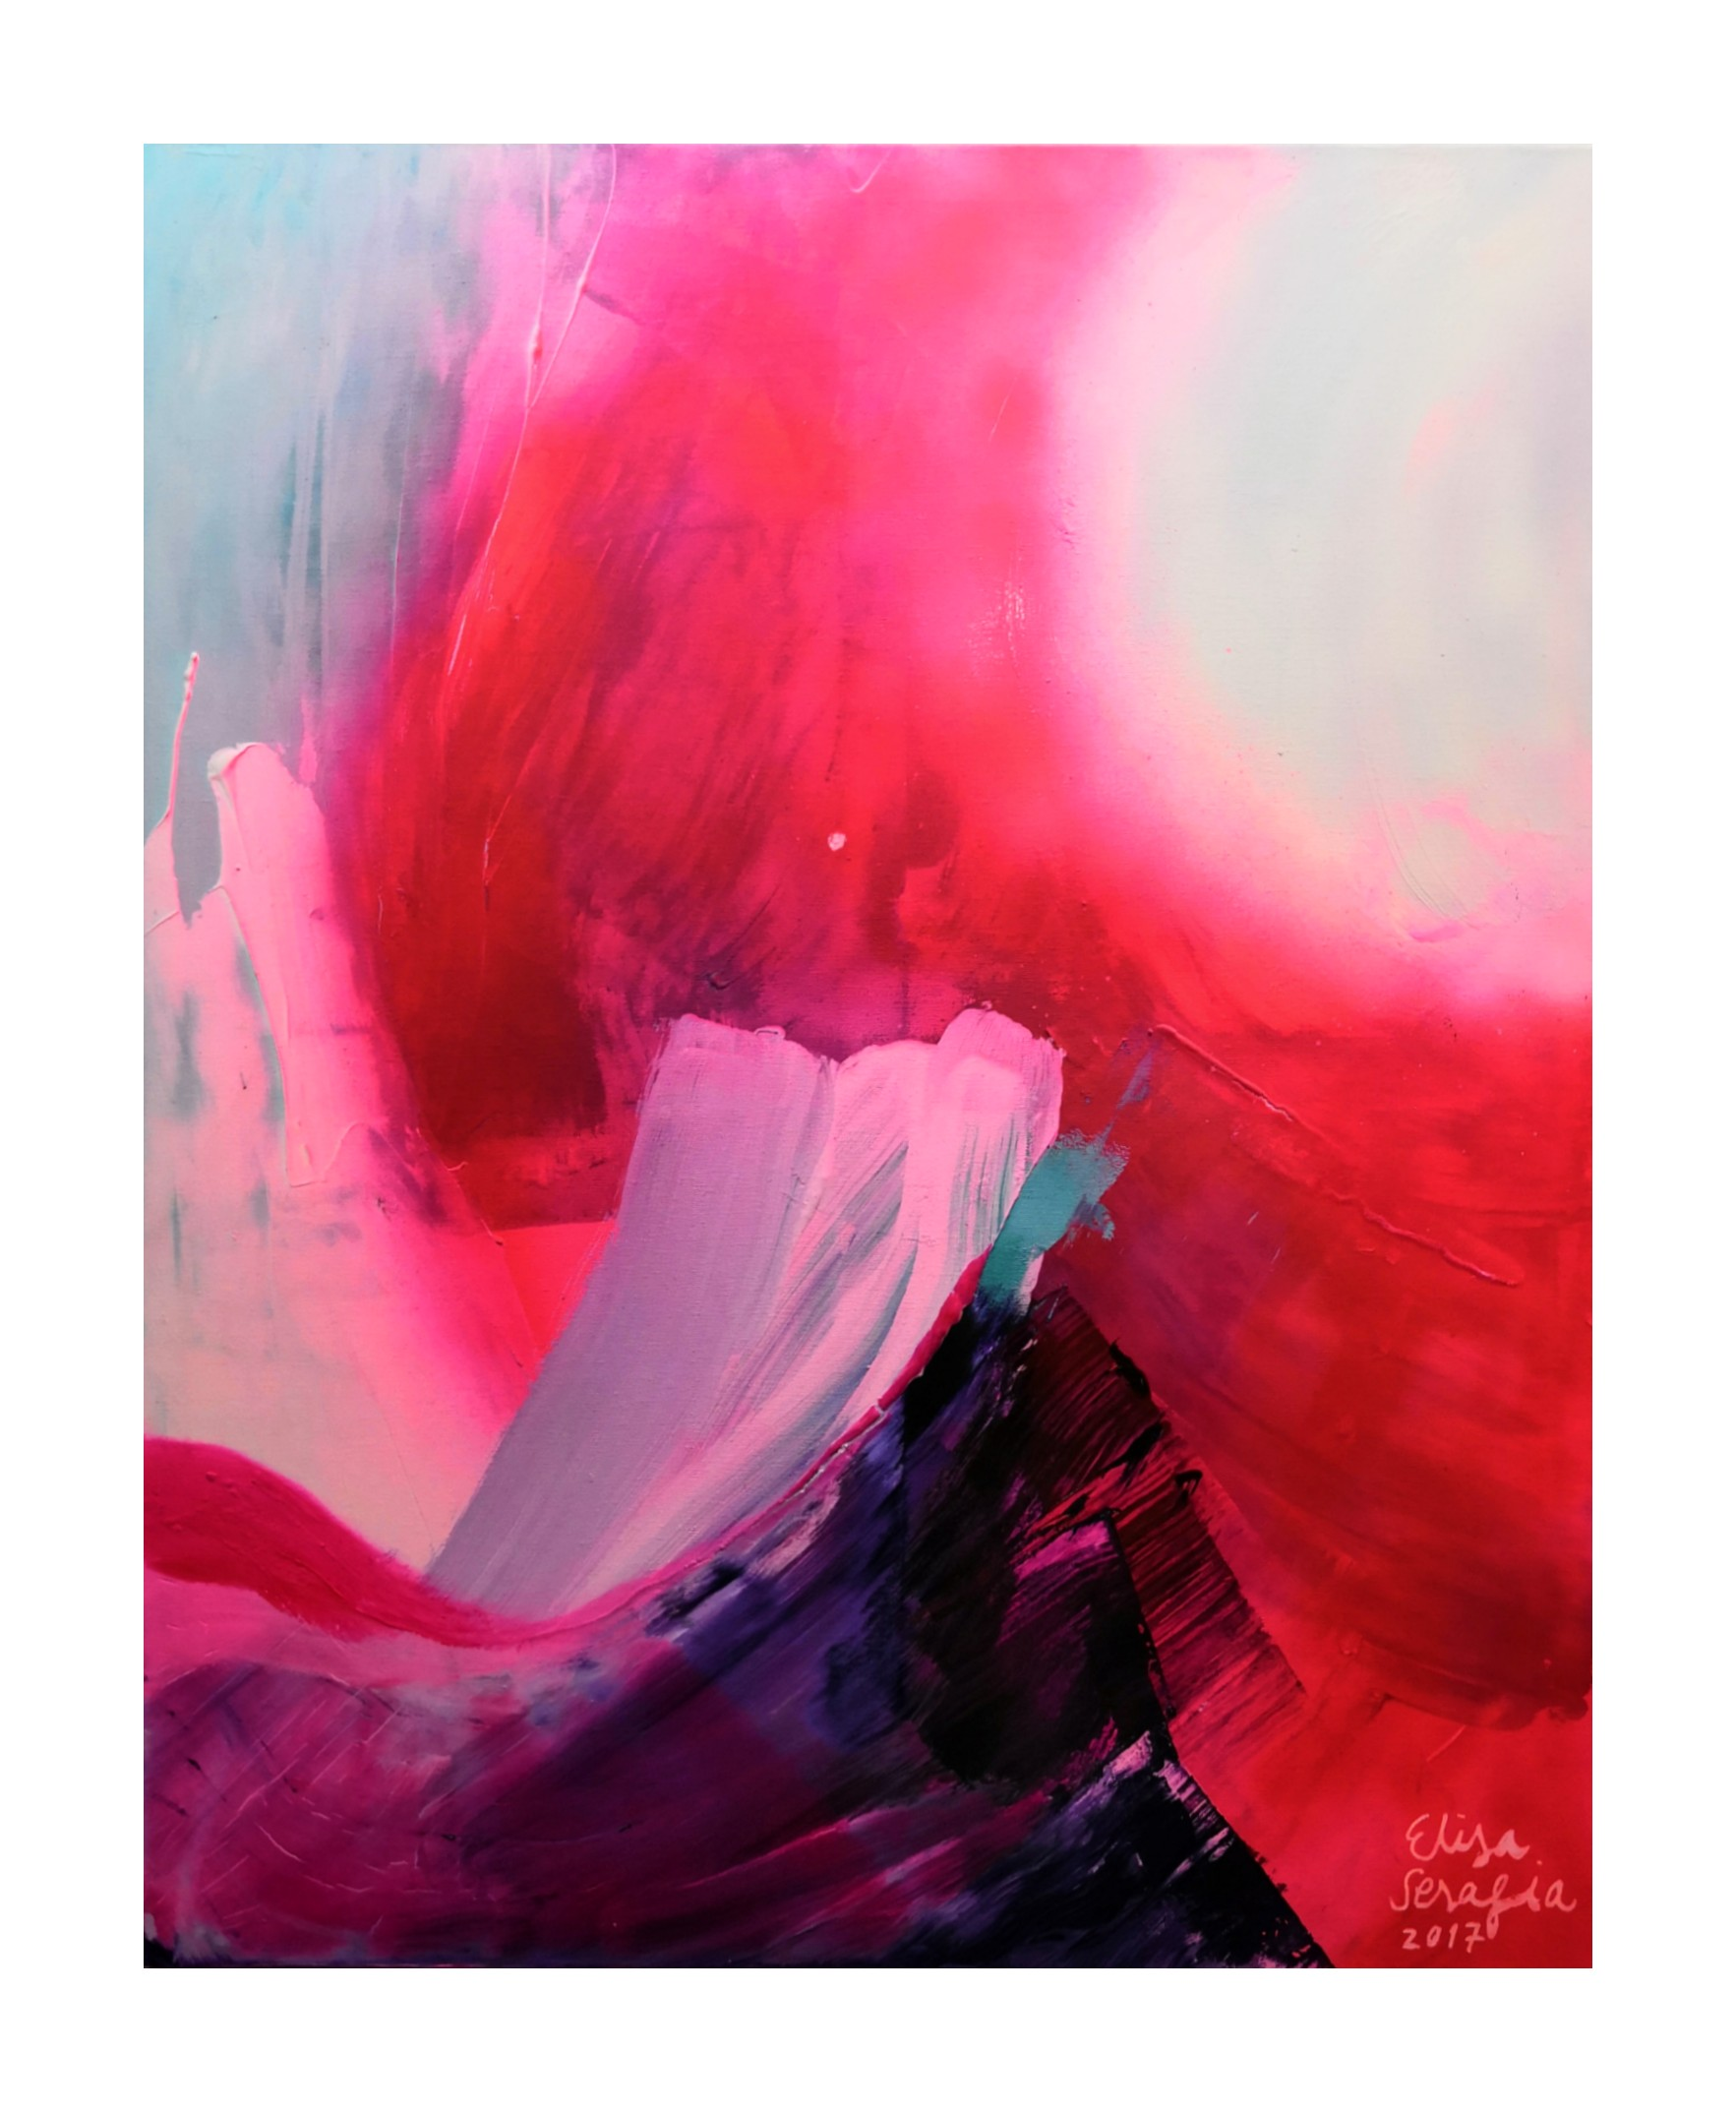 Magma |, Akryyli kankaalle, 100 cm x 80 cm  Myyty / Sold